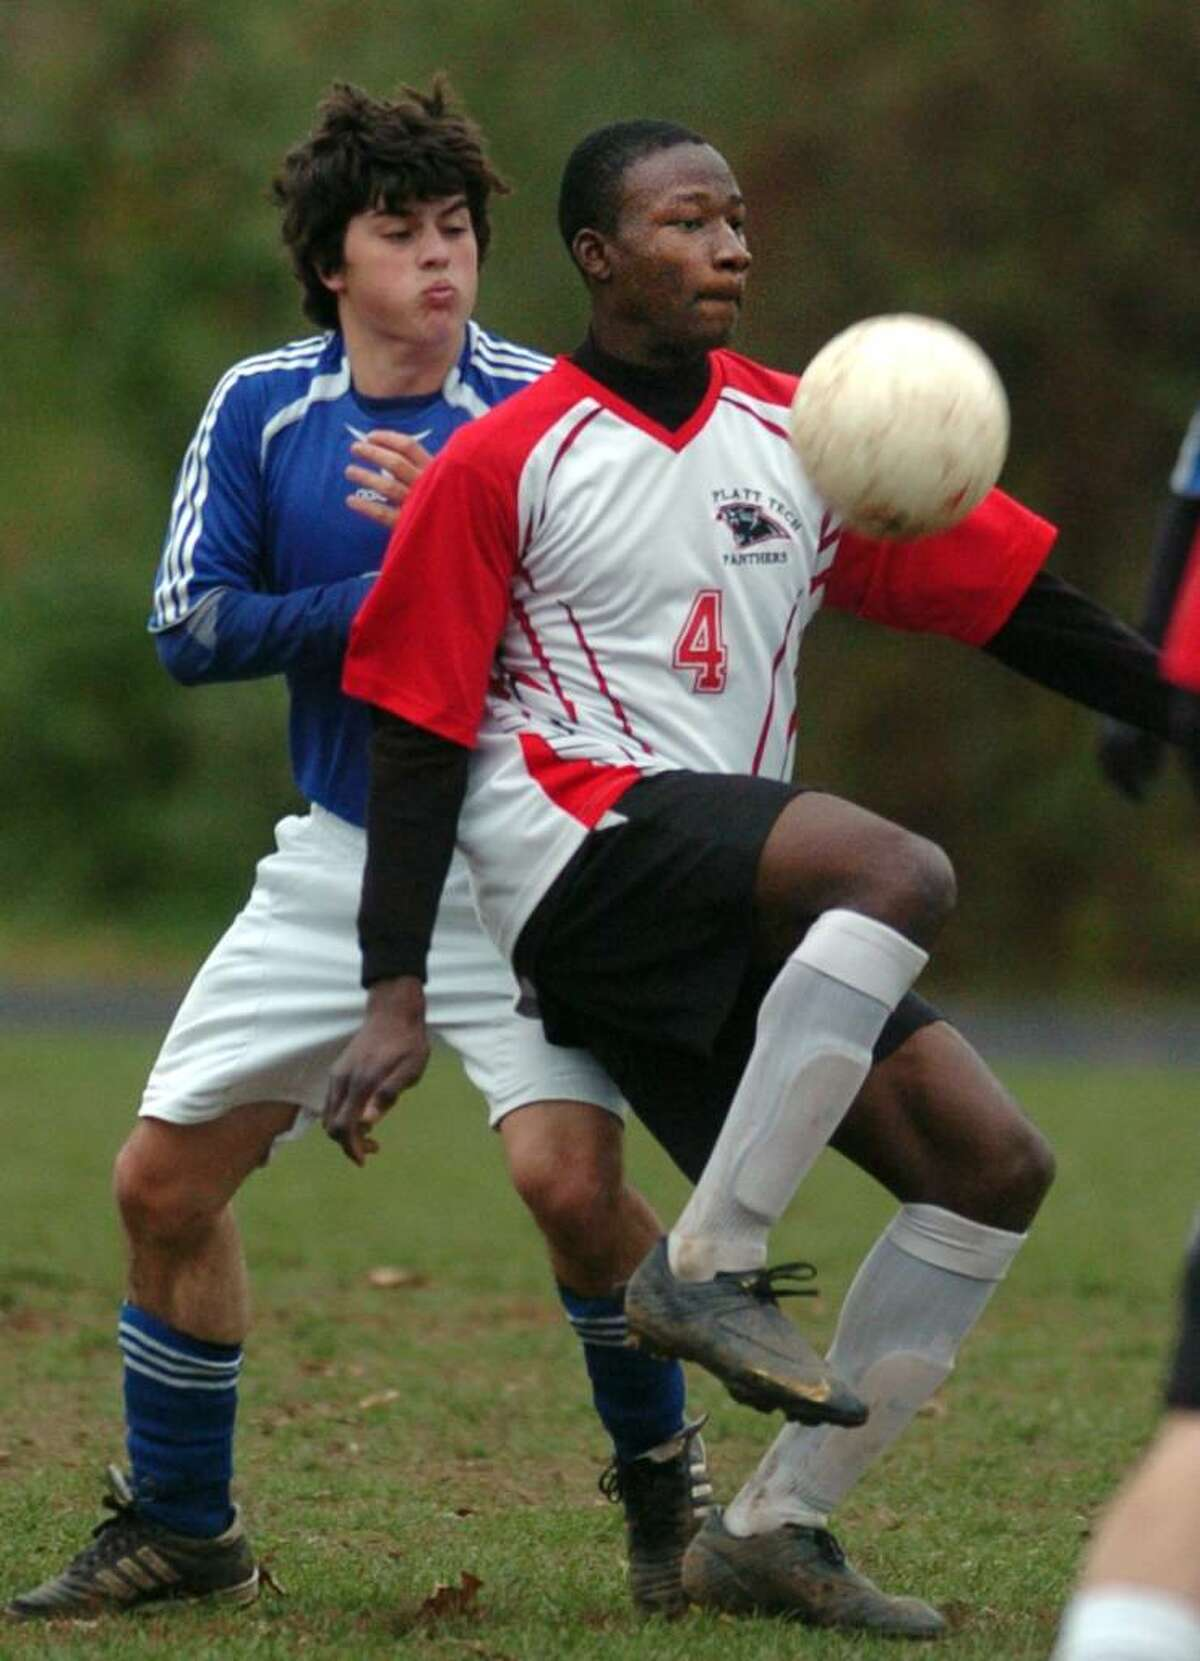 Platt Tech's Bruno Chima controls the ball as Fairfield Ludlowe's Luke Carter knocks into him during the first half of Thursday's Class L second round game in Milford.